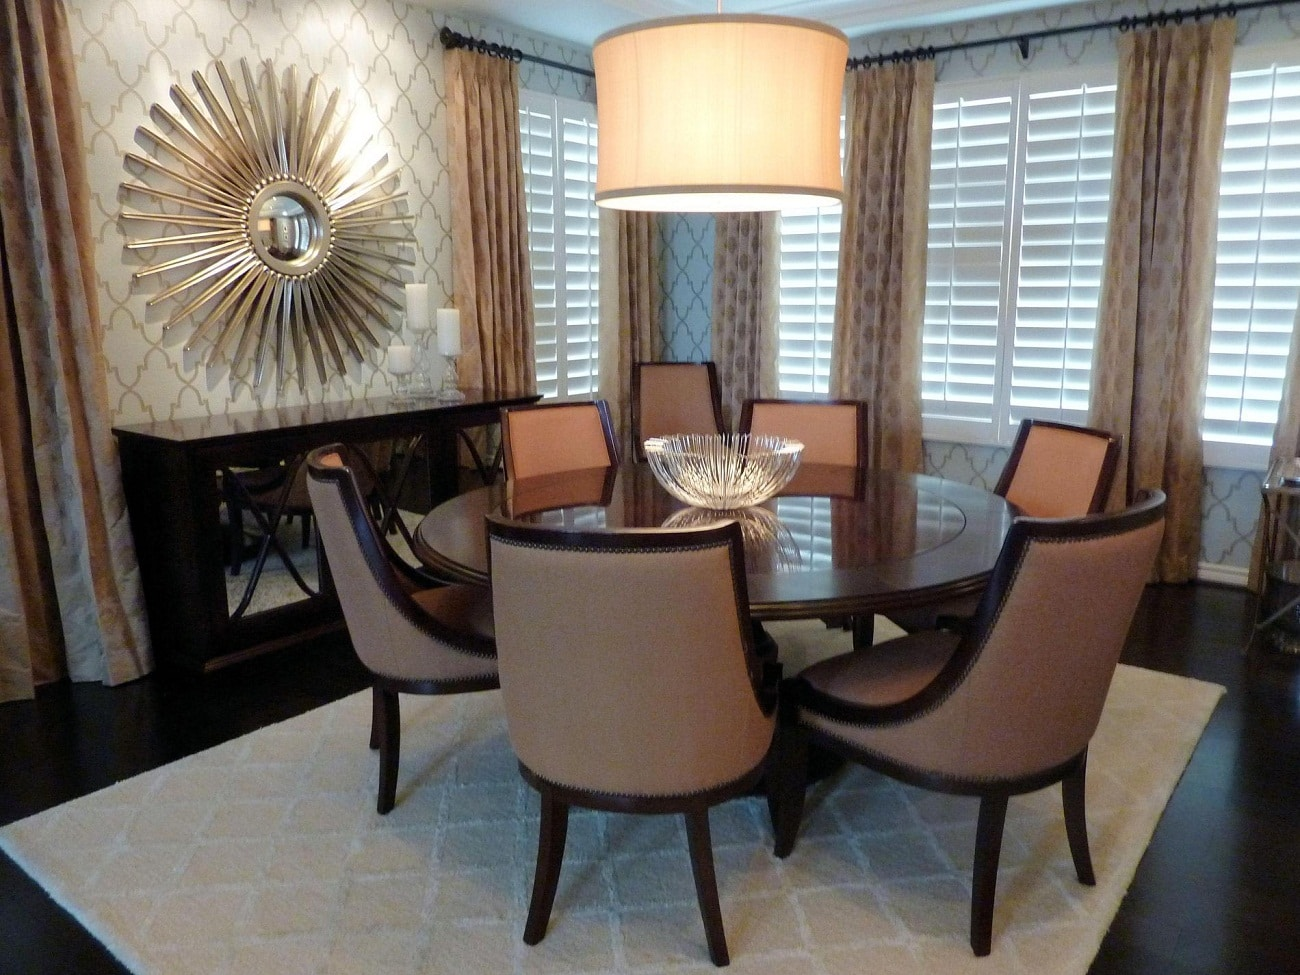 Home decor dining room ideas living room decor ideas for Large dining room decorating ideas